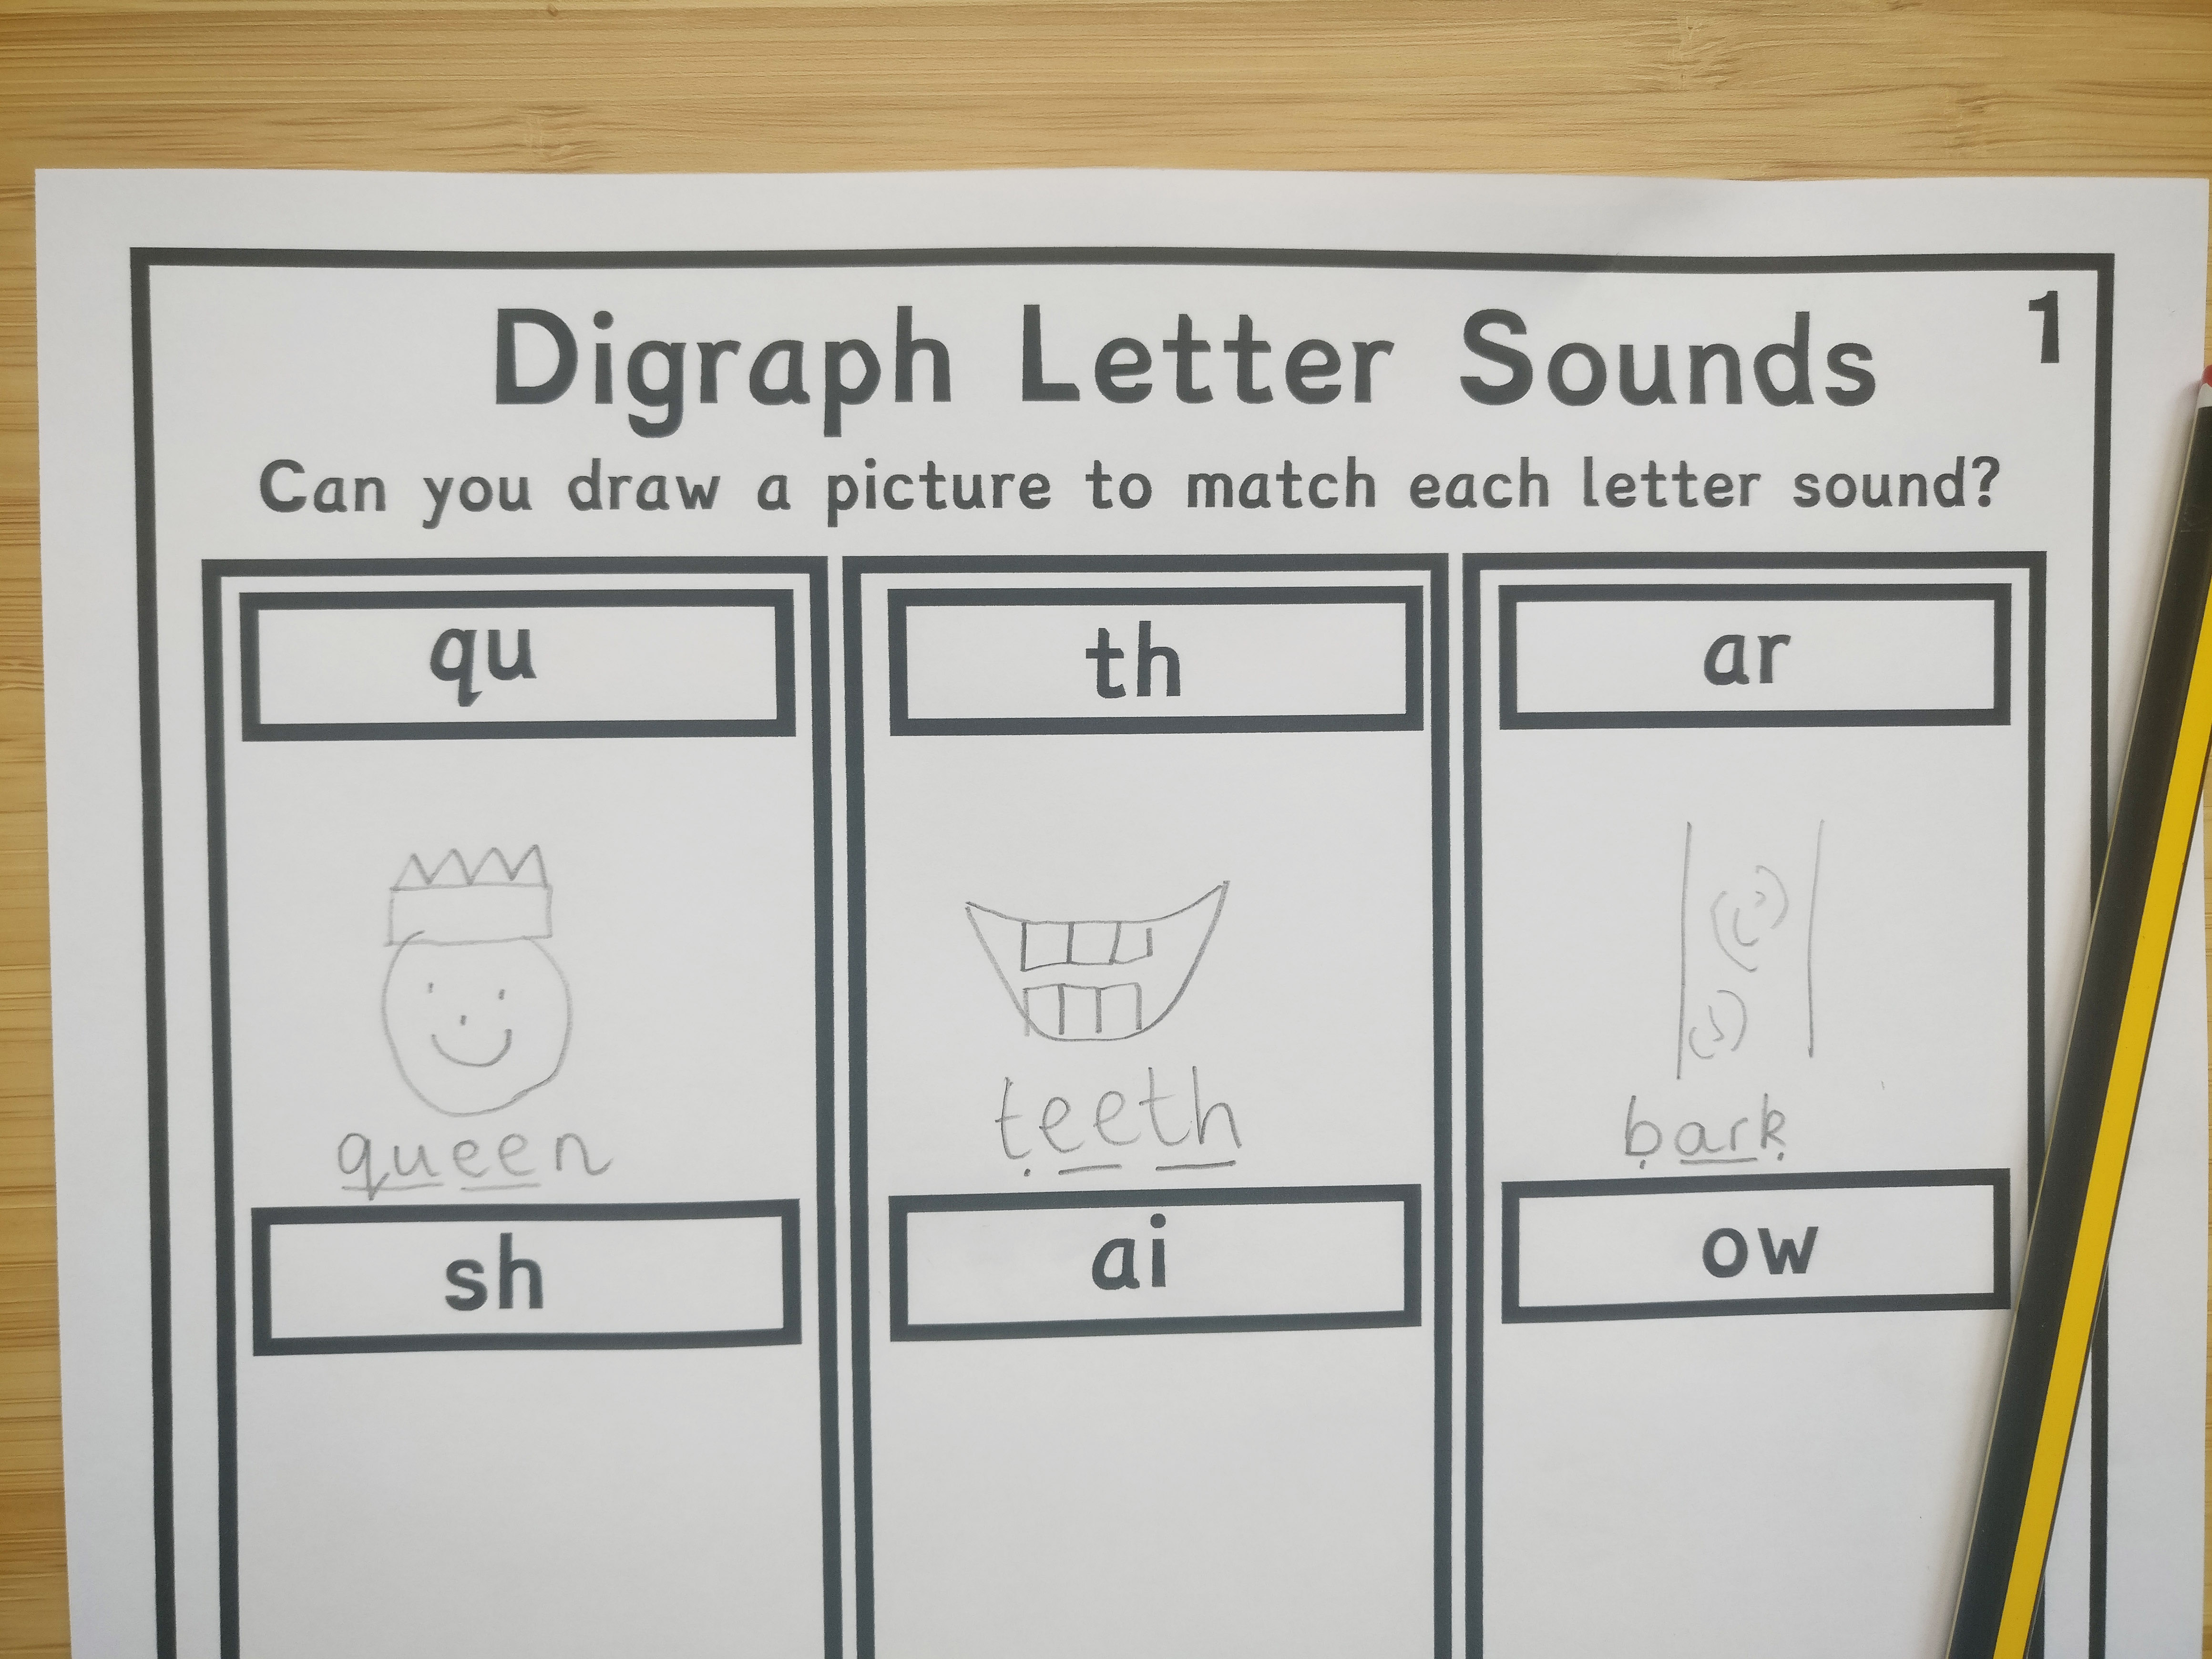 Draw a Picture to Match the Sound